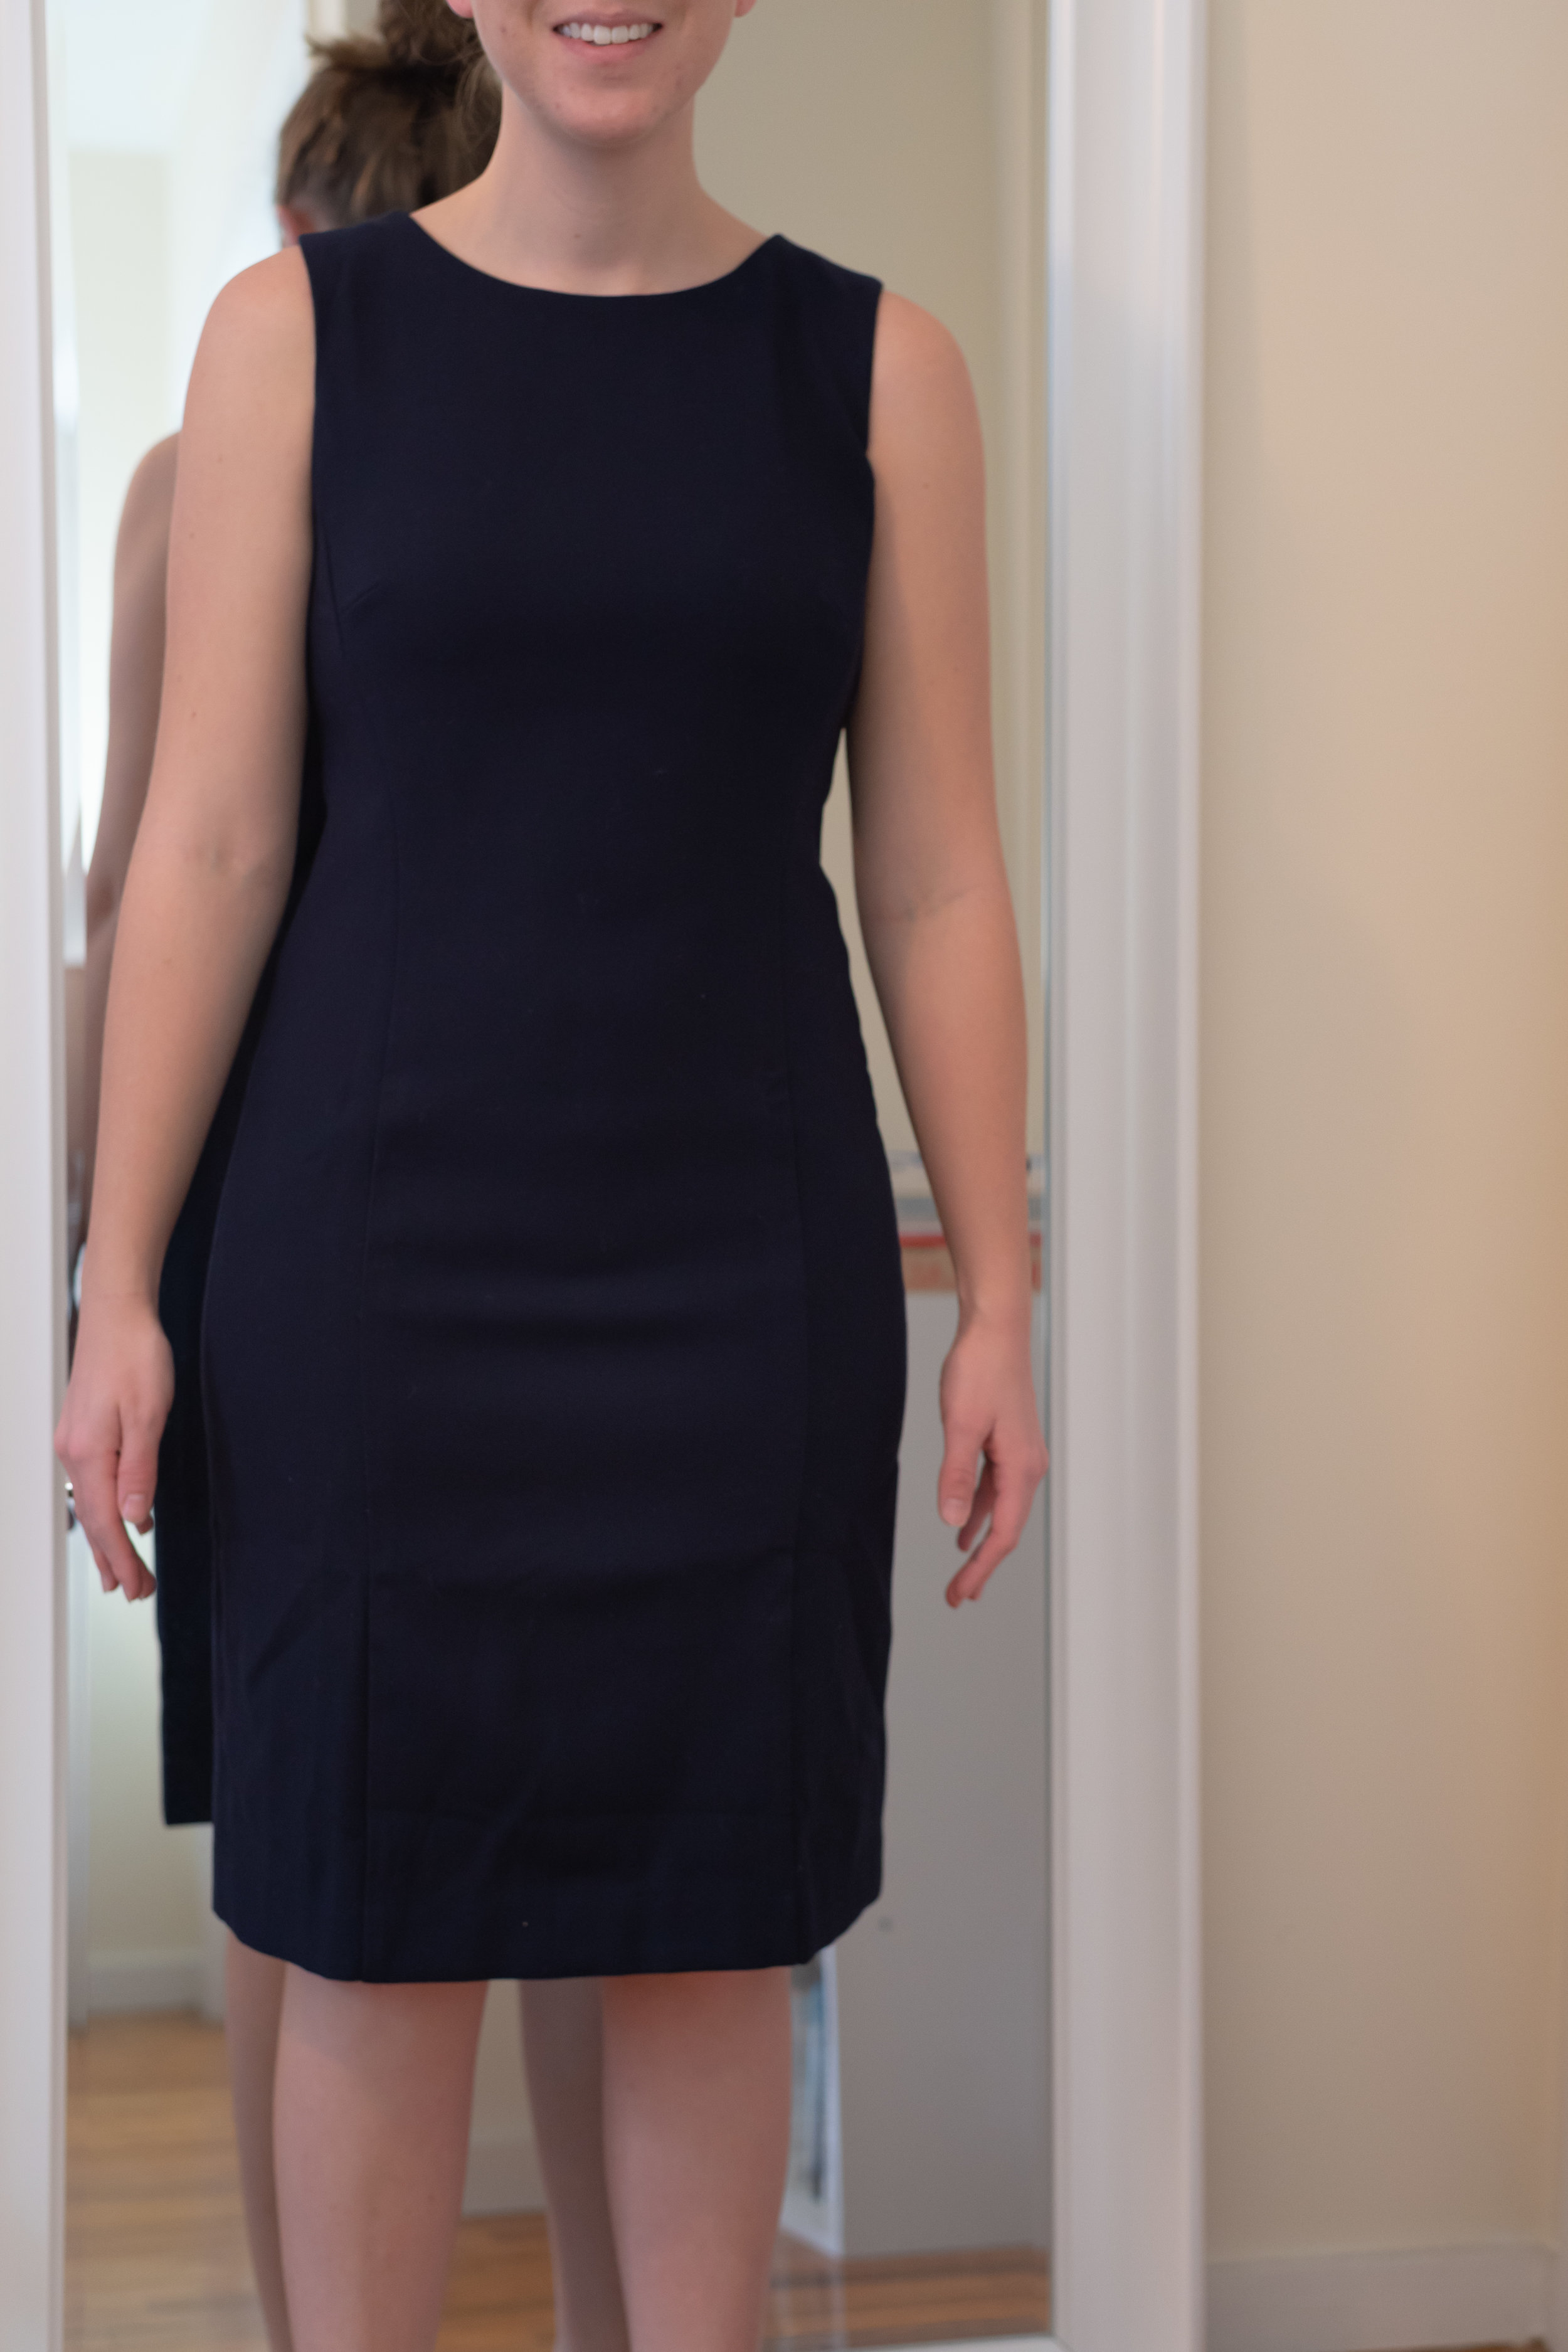 J. Crew Petite Long Sheath Dress - Size 4 Petite